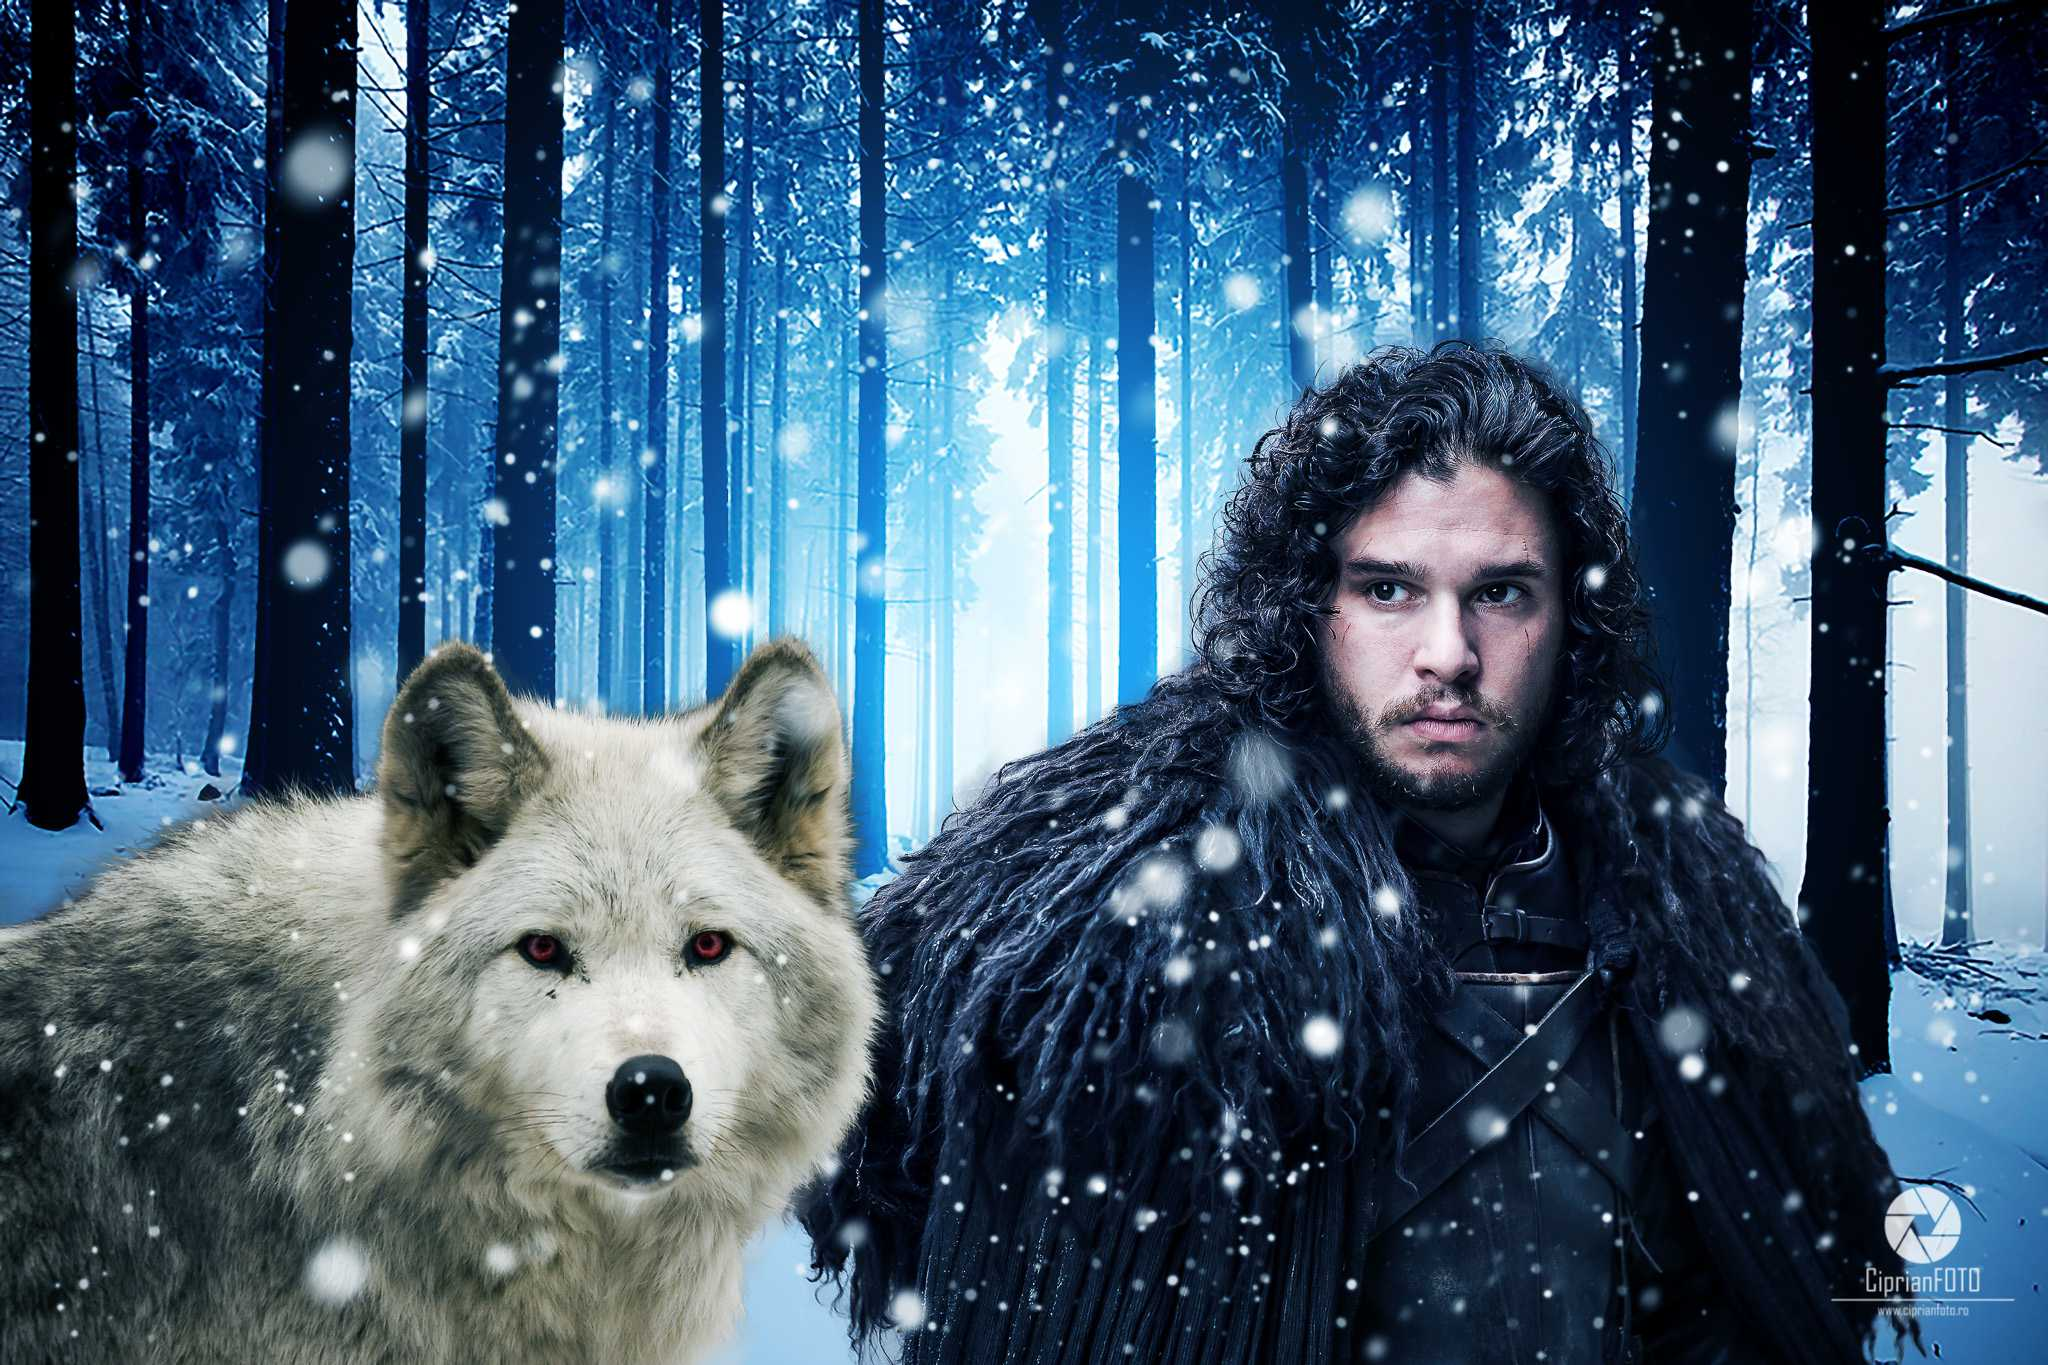 Jon Snow And His Ghost Direwolf, Photoshop Manipulation Tutorial, CiprianFOTO